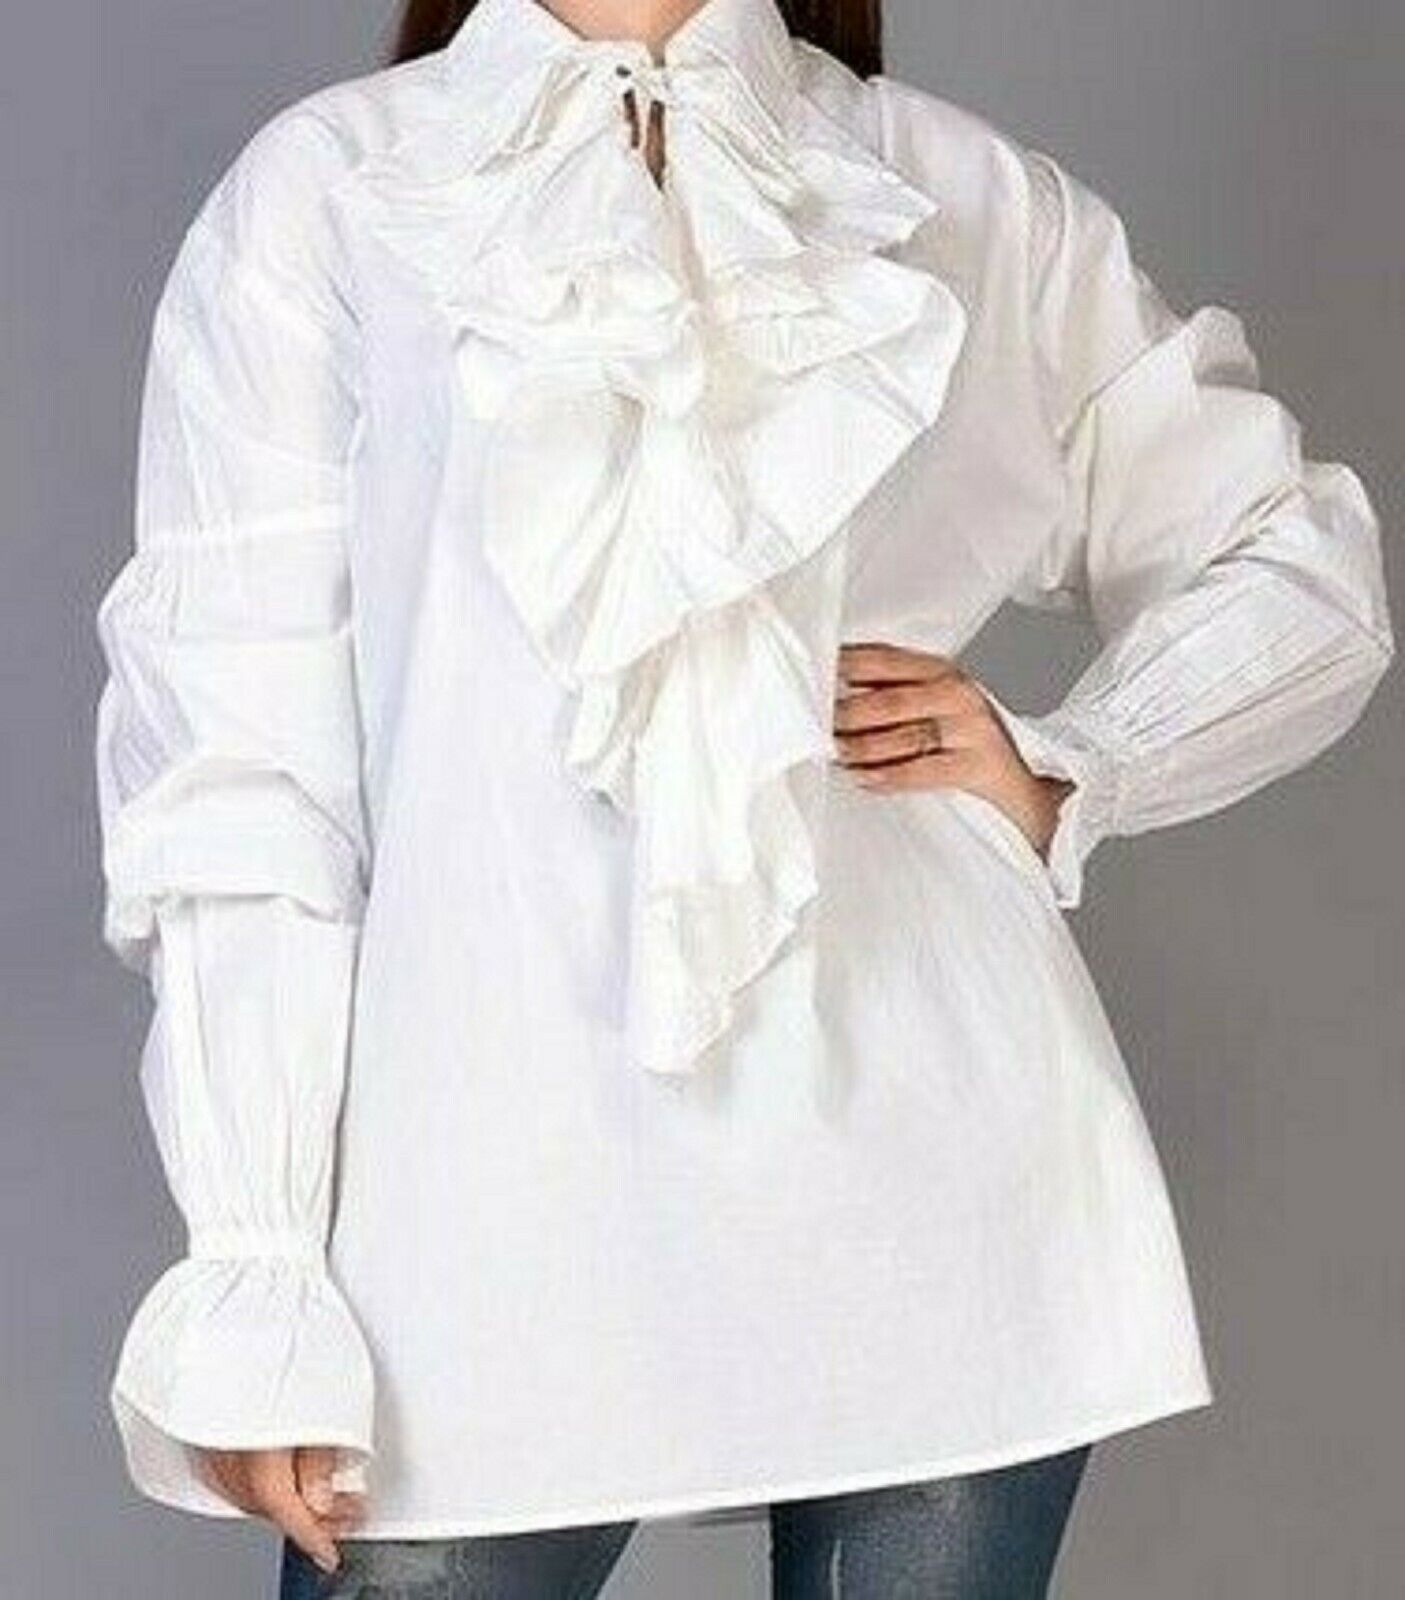 gothic medieval period costume shirt cosplay Halloween playrole 42-46